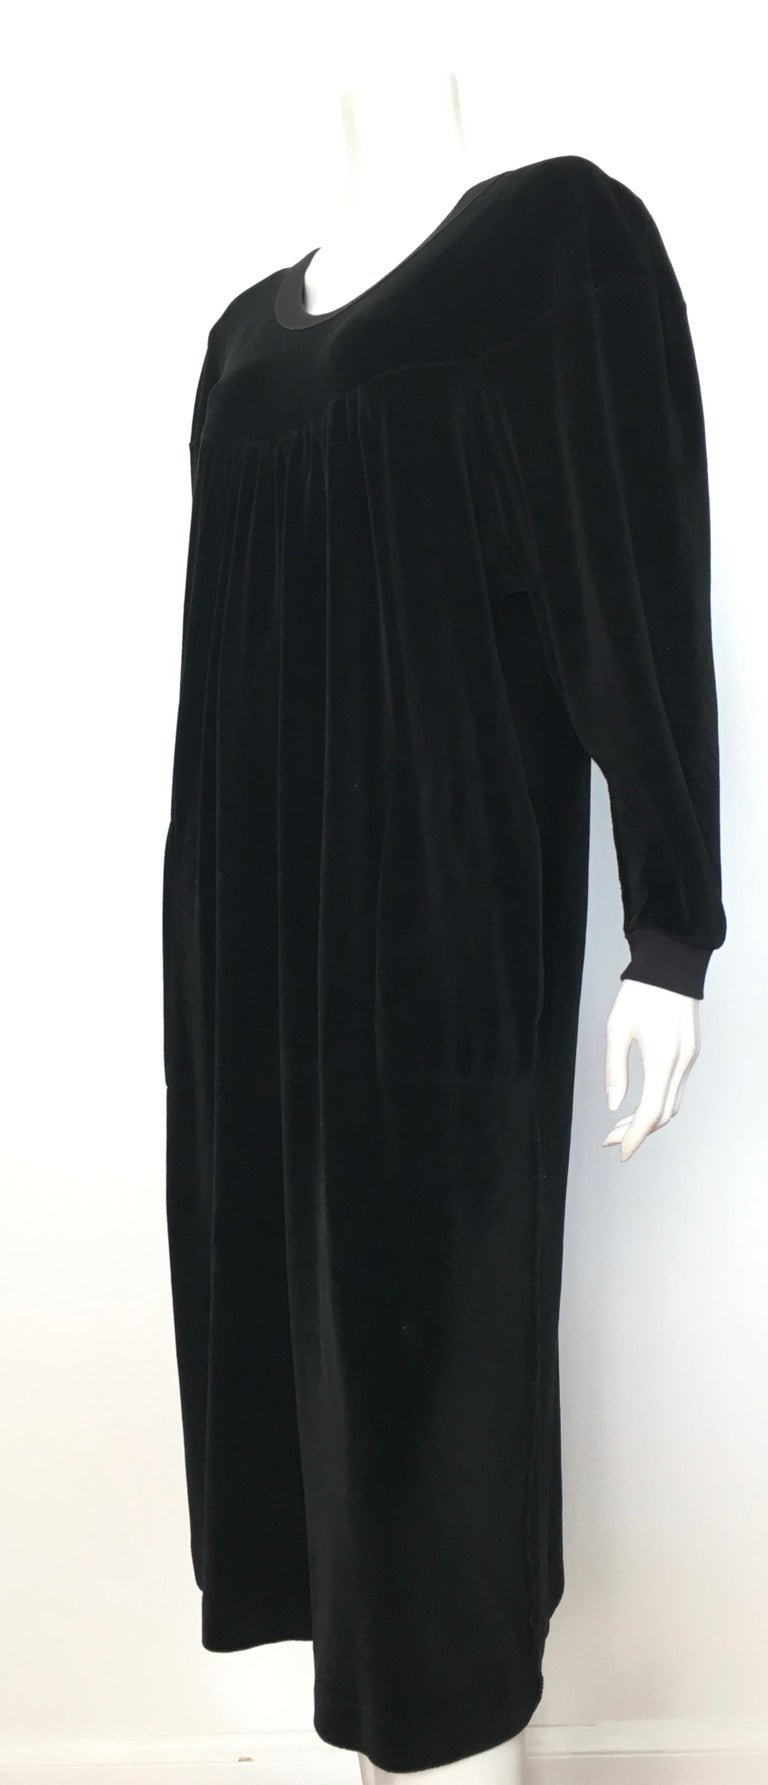 Sonia Rykiel 1980s Black Velour Dress with Pockets & Cardigan Size Large. For Sale 7